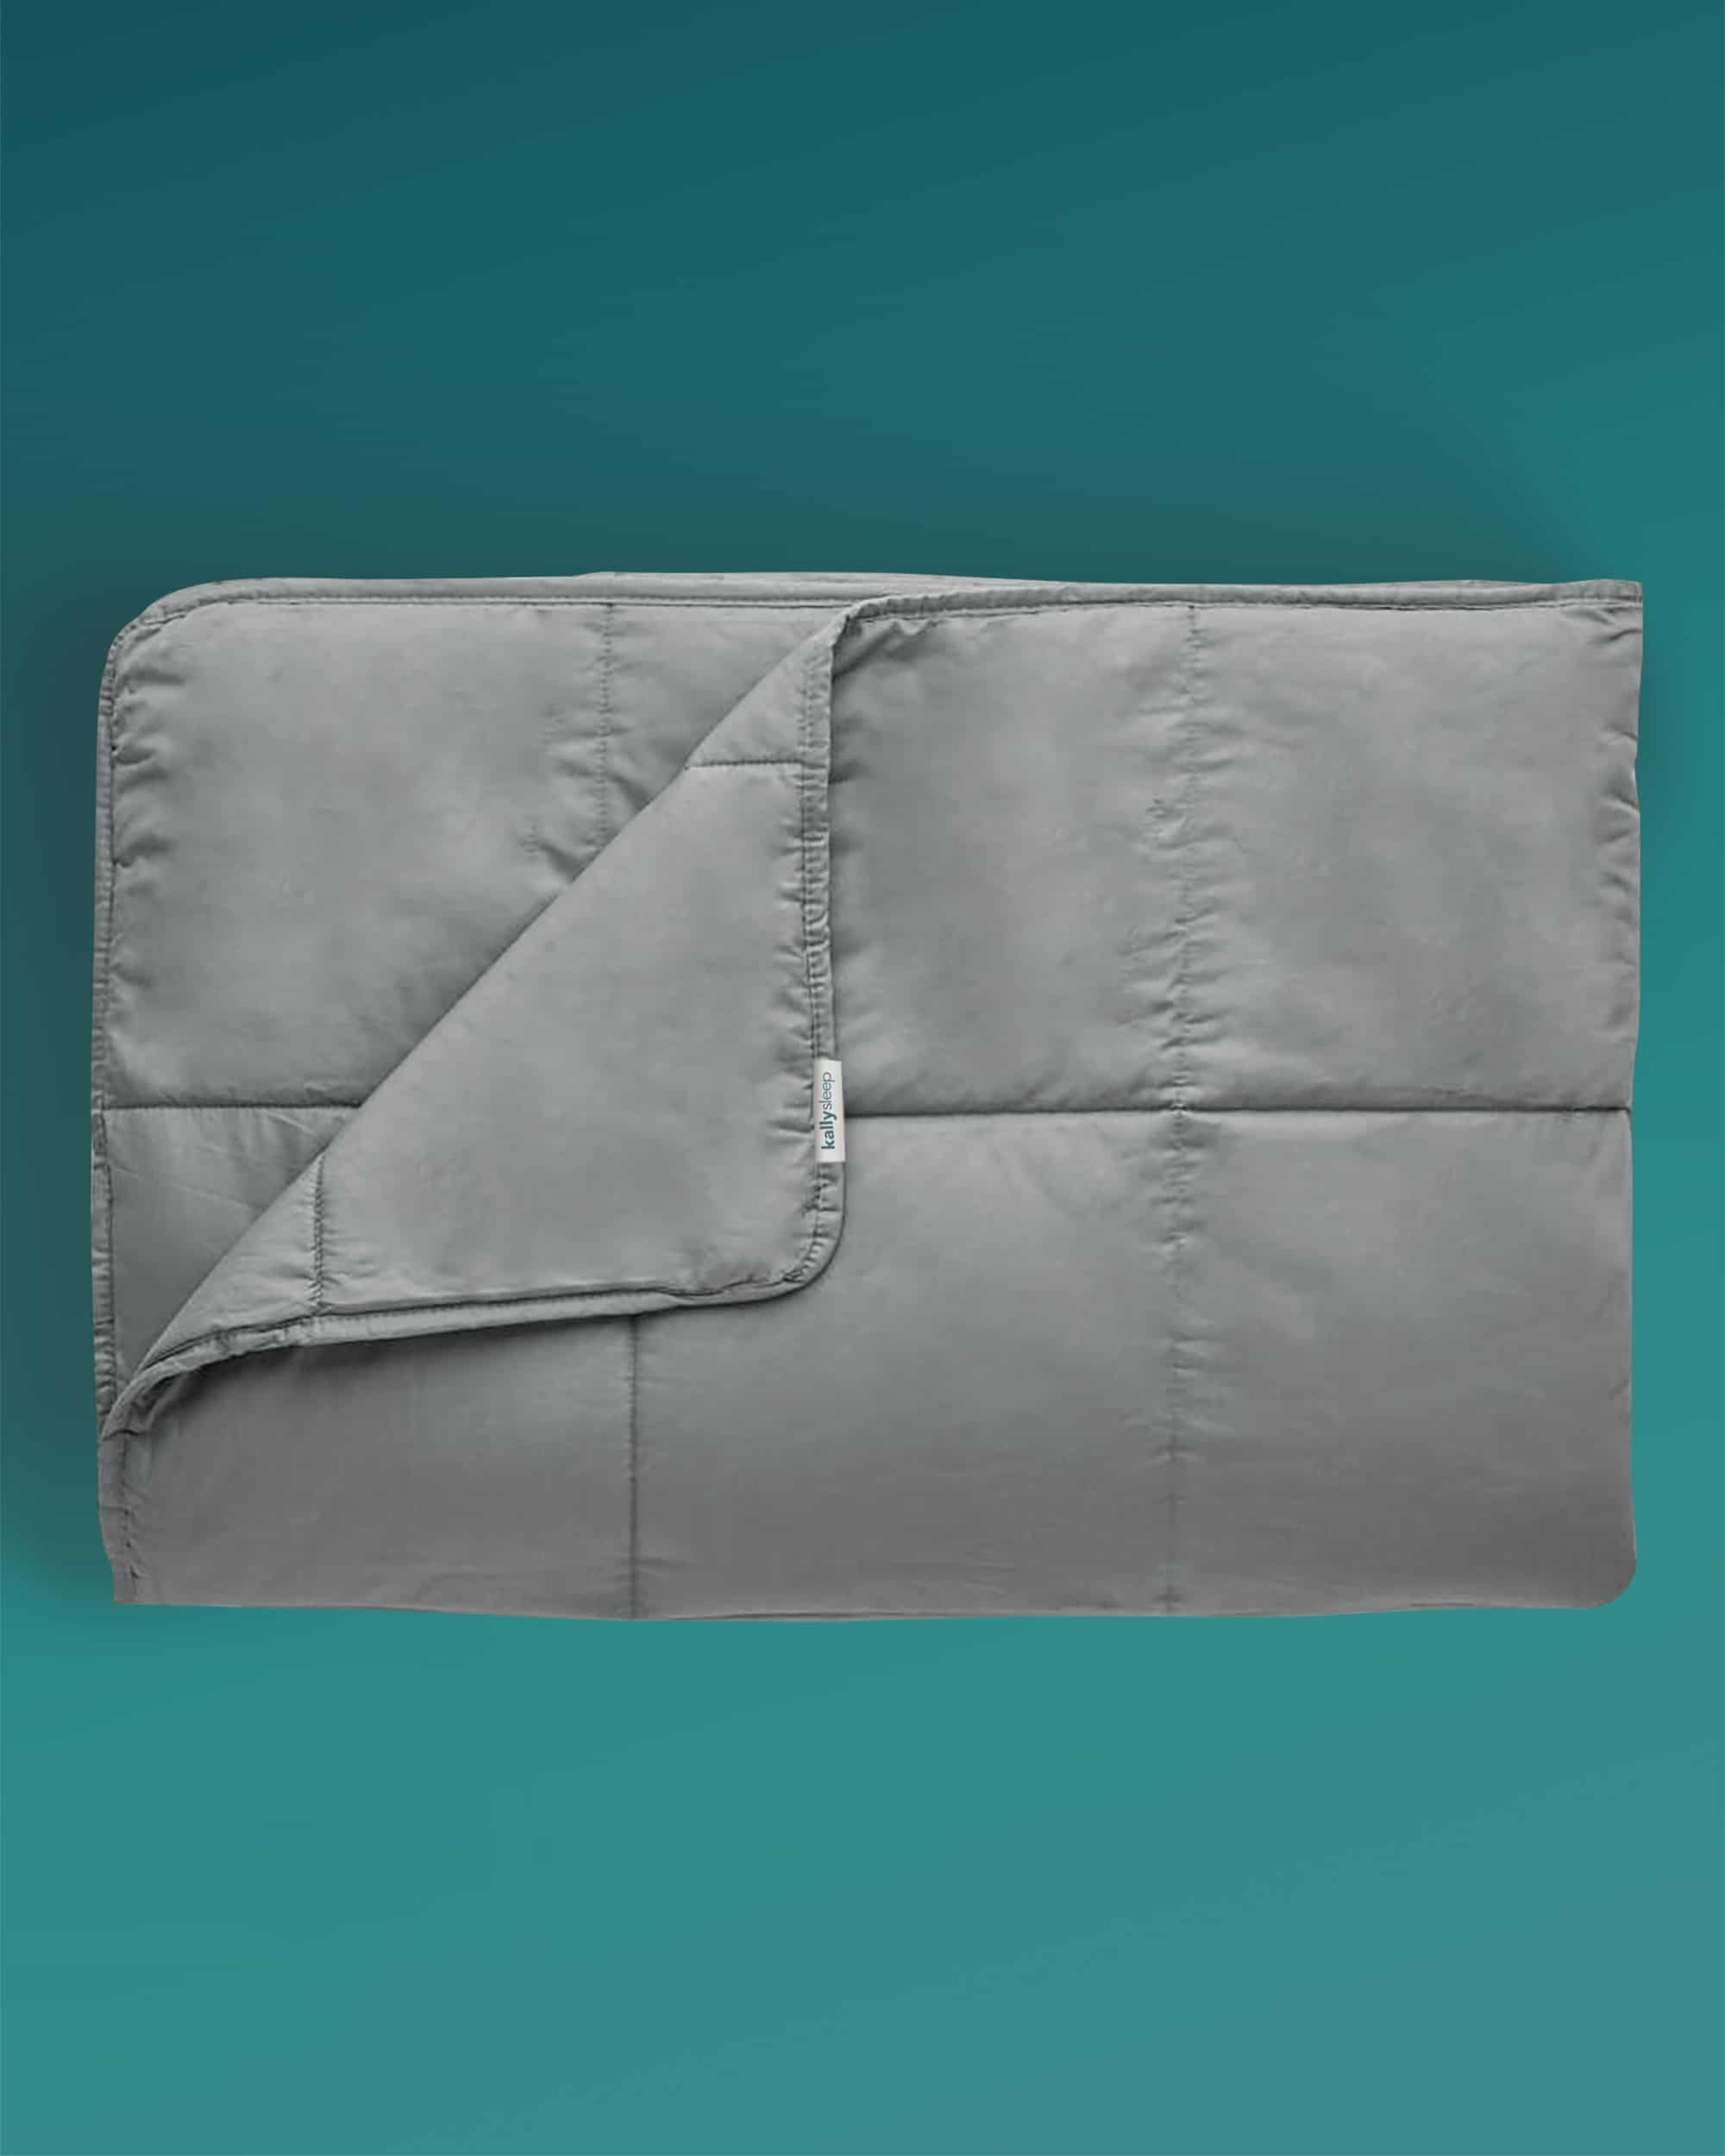 Kally Weighted Anxiety Blanket